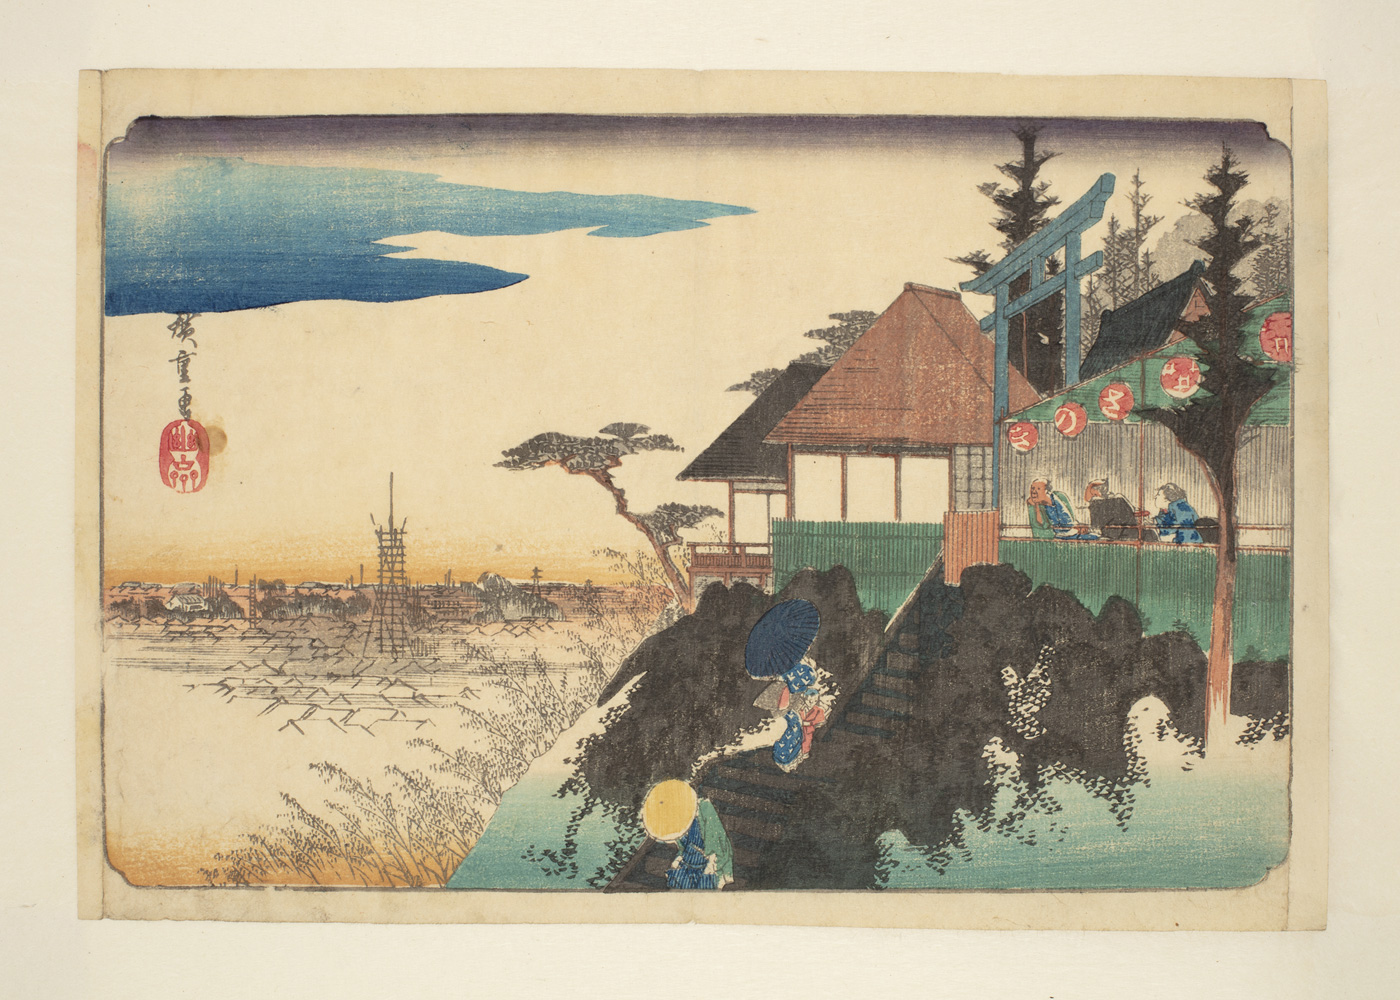 Japanese print. In the foreground two figures climb the steep steps to a building with a balcony where two people are waiting. They are dressed in traditional robes and each carries an umbrella. From this vantage point they can see the landscape below and a distant town.